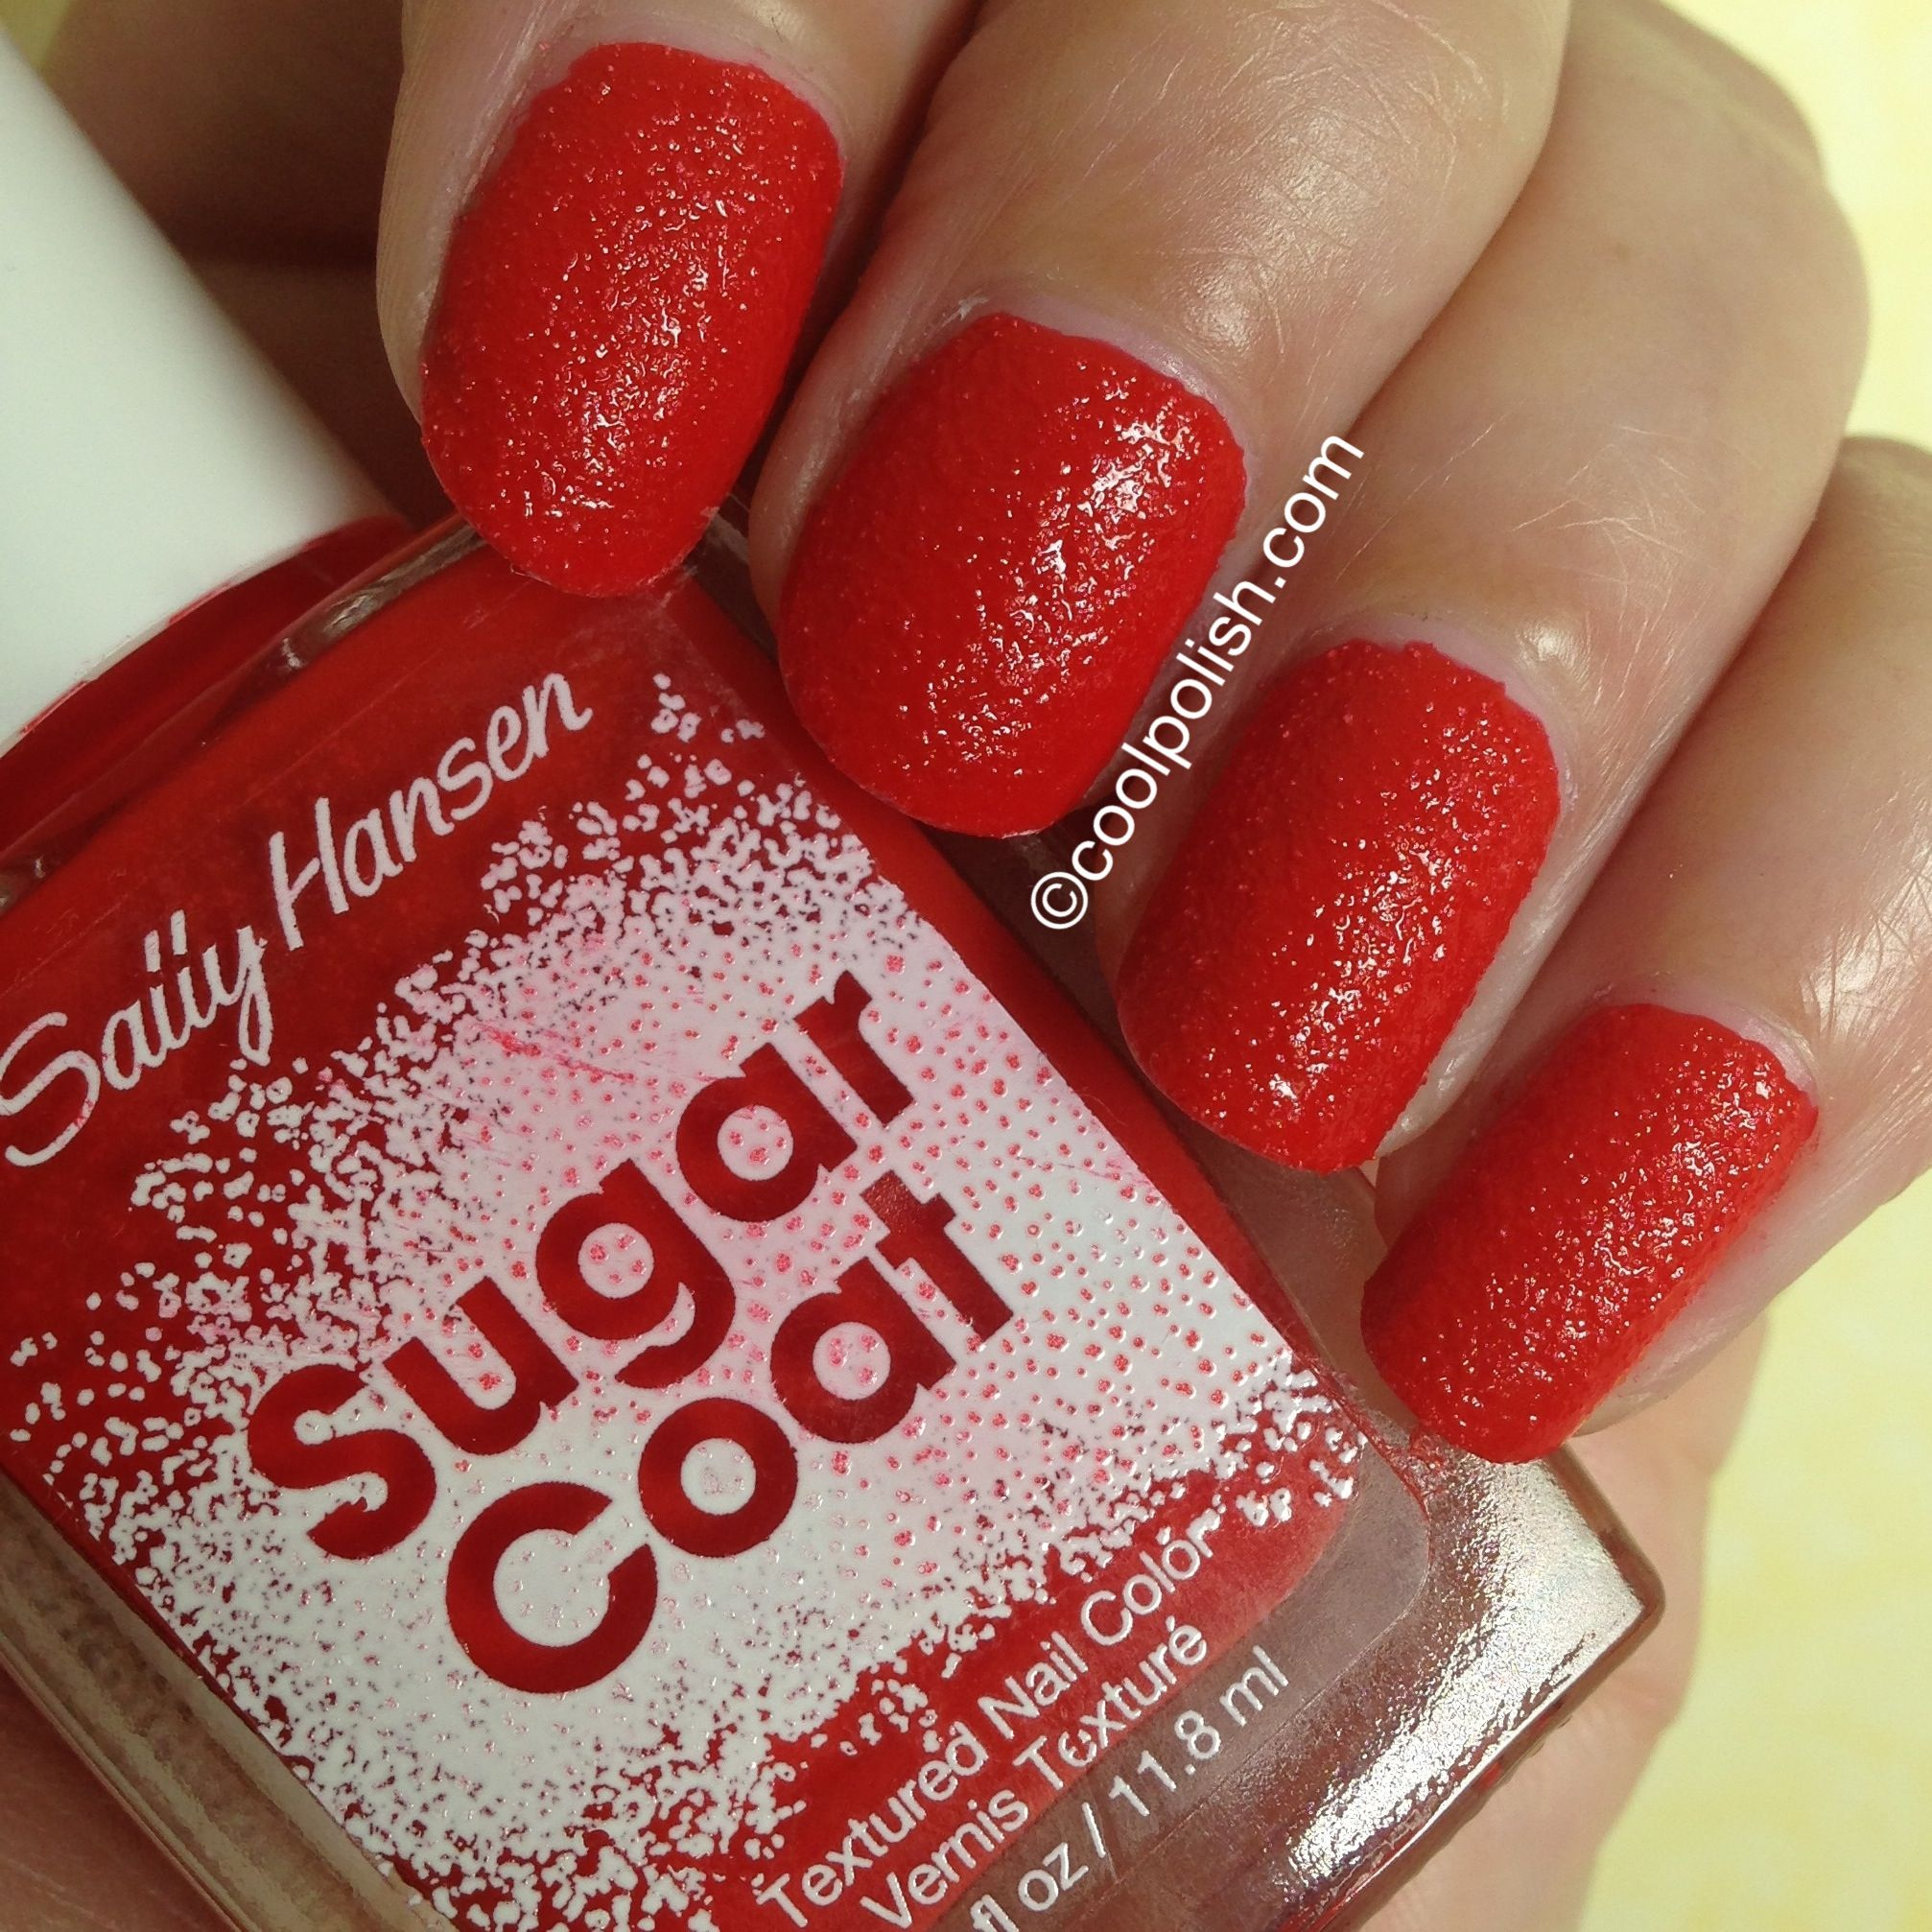 Sally Hansen sugar Coat | makeup/nails | Pinterest | Sally hansen ...